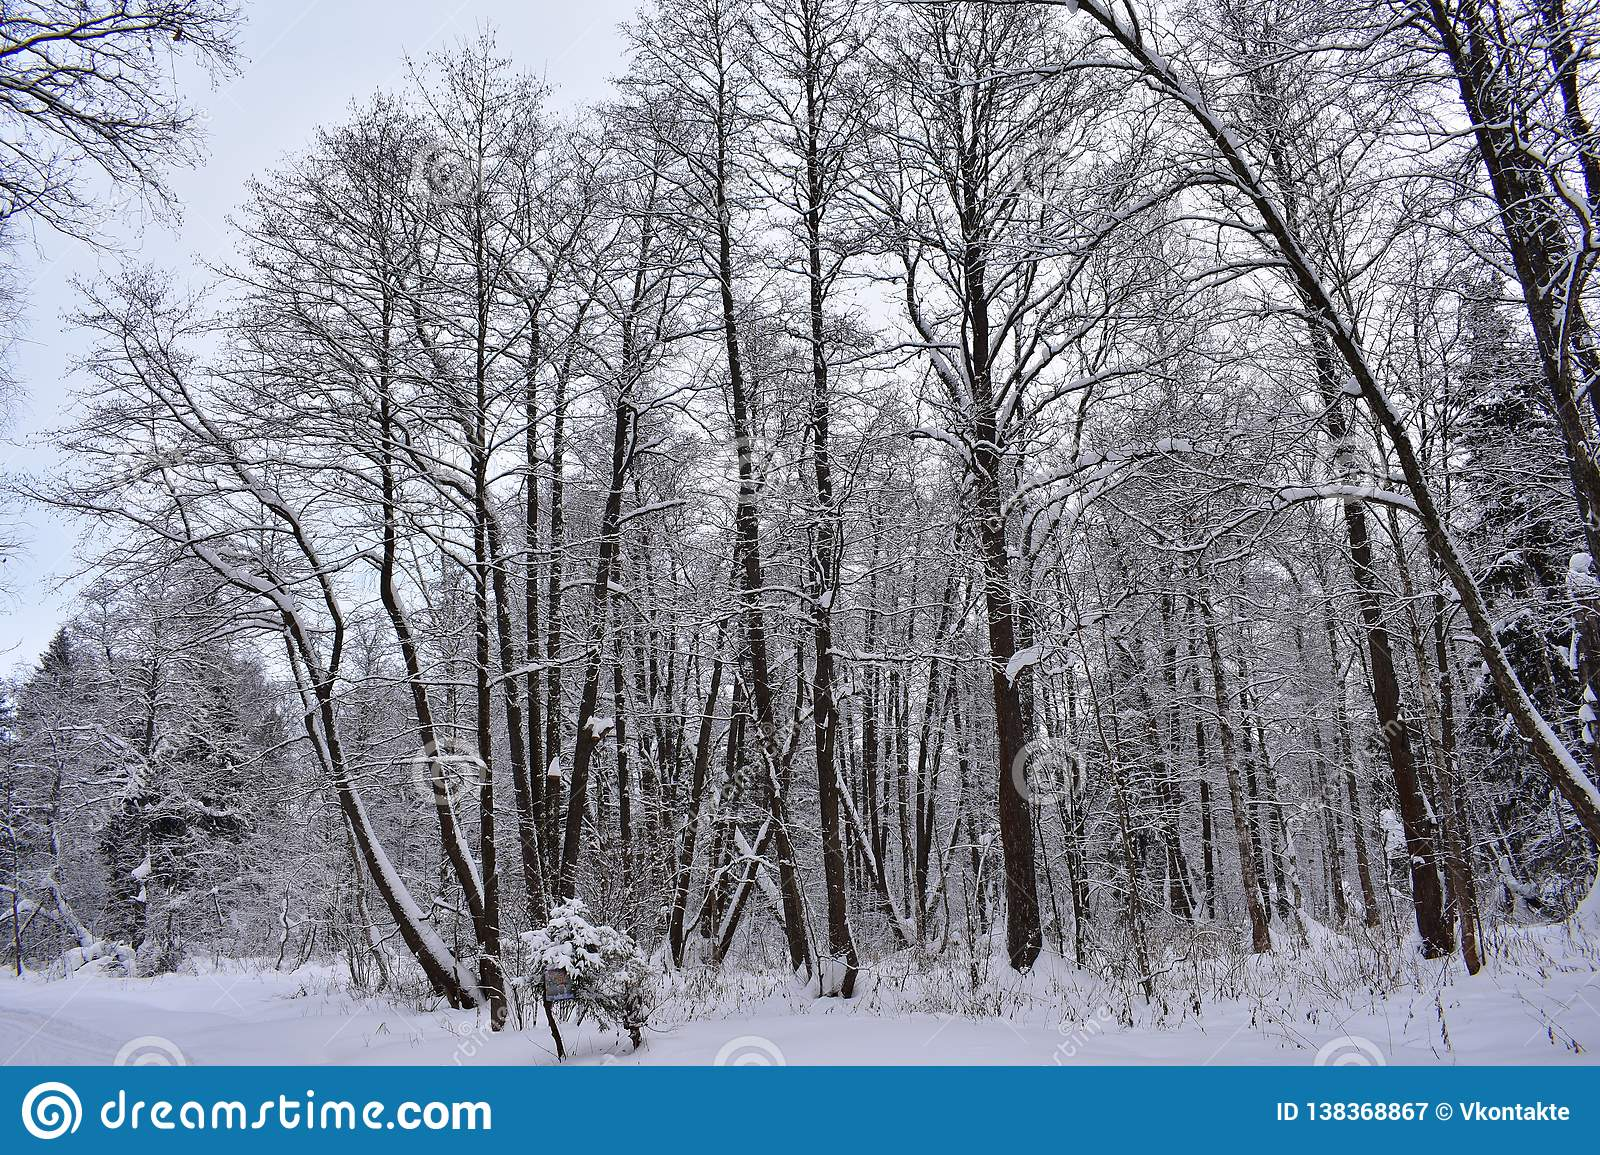 Winter forest is like a huge Palace, where winter lives, harsh trees, like guards, stand still